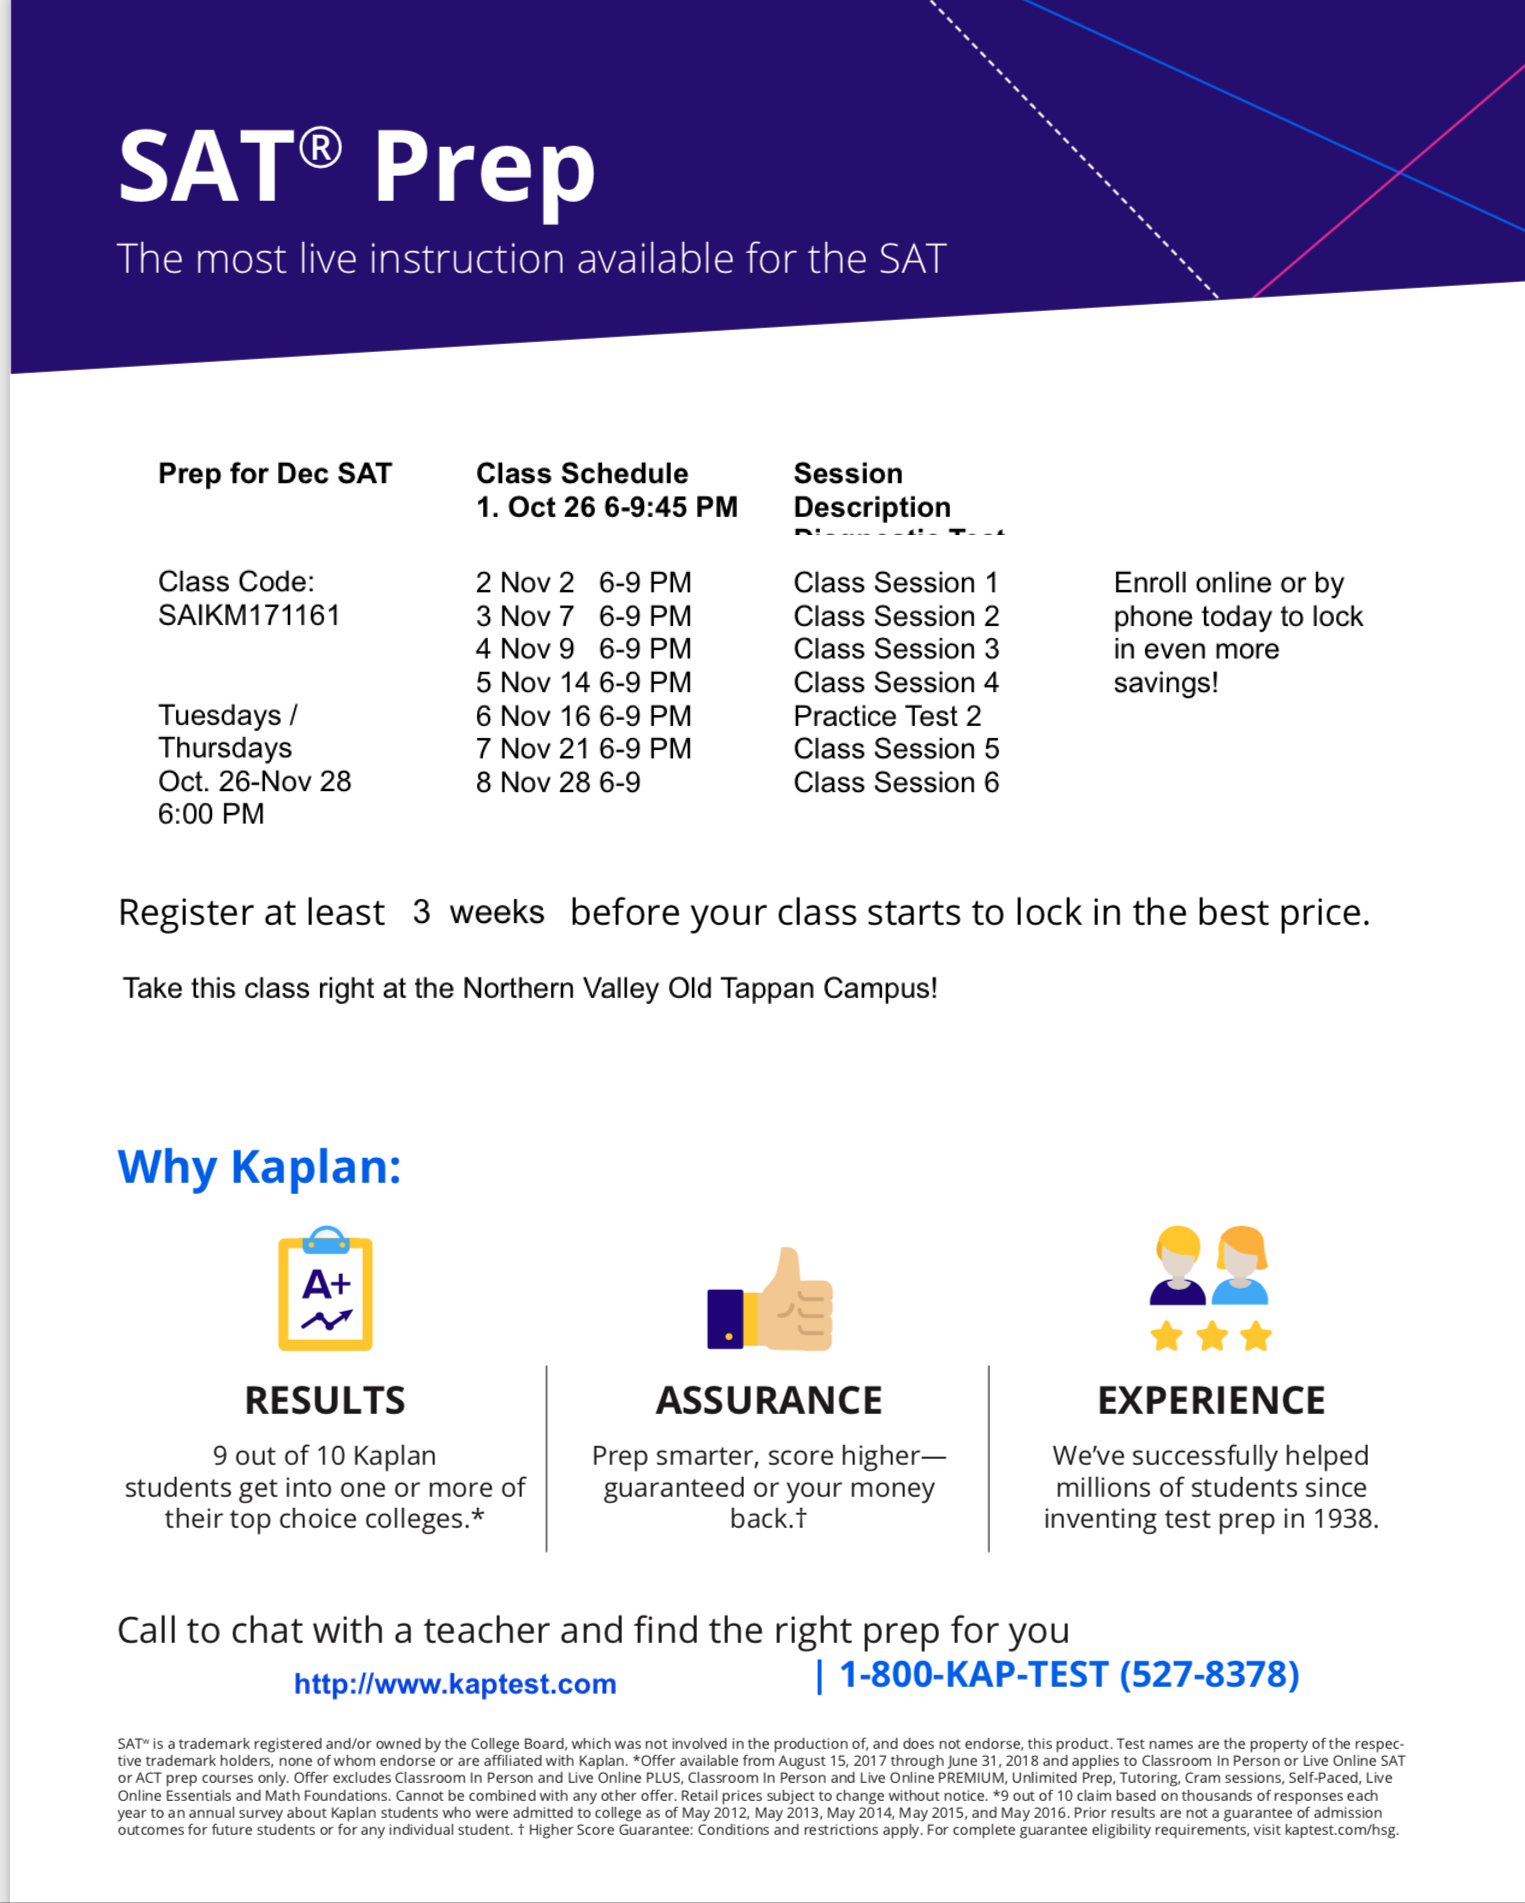 KAPLAN OCT 2017 CLASSES